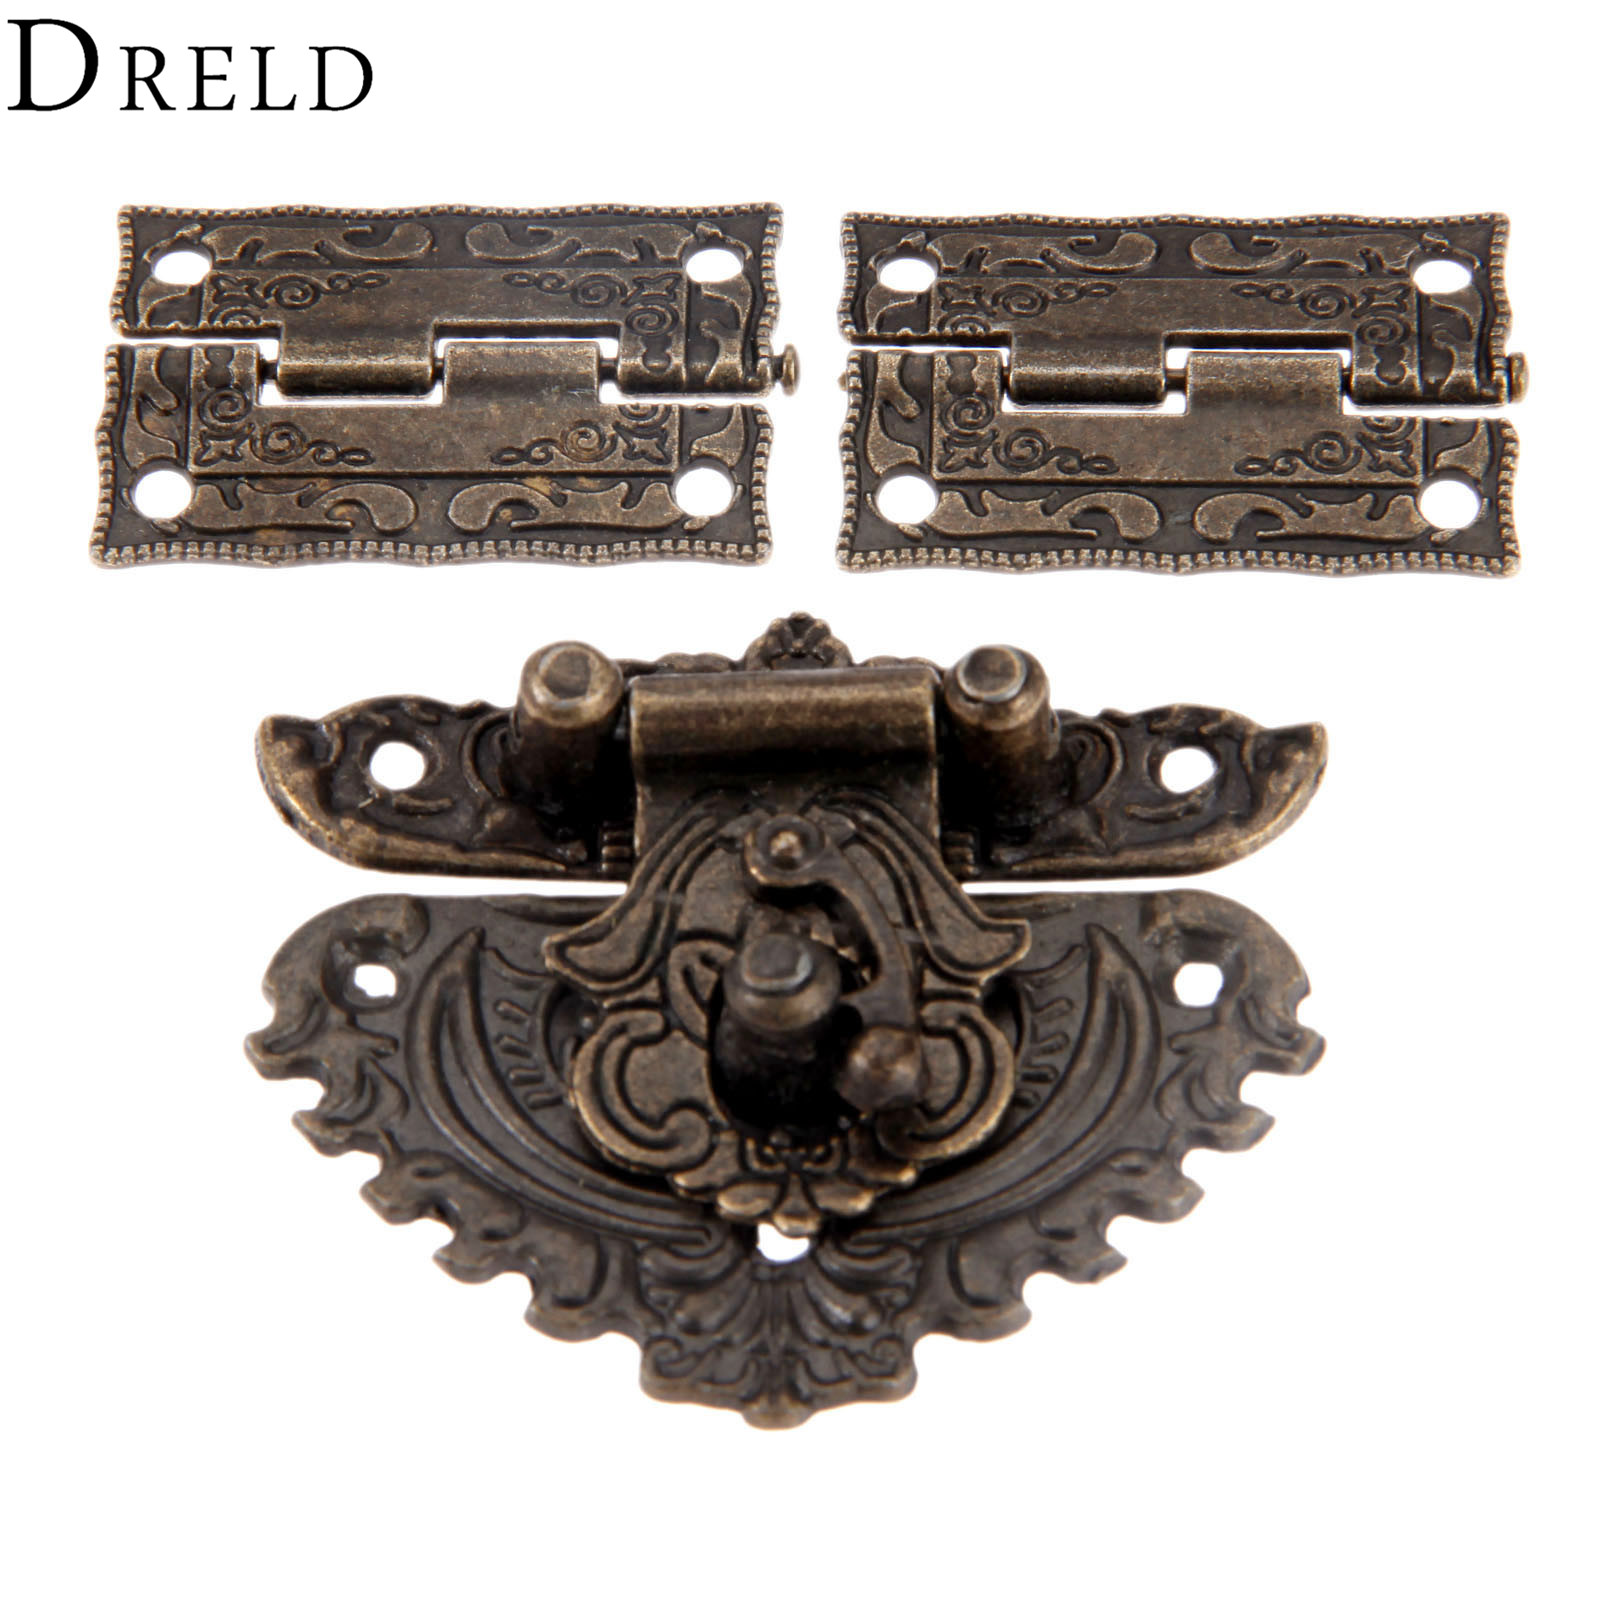 dreld-antique-bronze-furniture-hardware-box-latch-hasp-toggle-buckle-2pcs-decorative-cabinet-hinges-for-jewelry-wooden-box